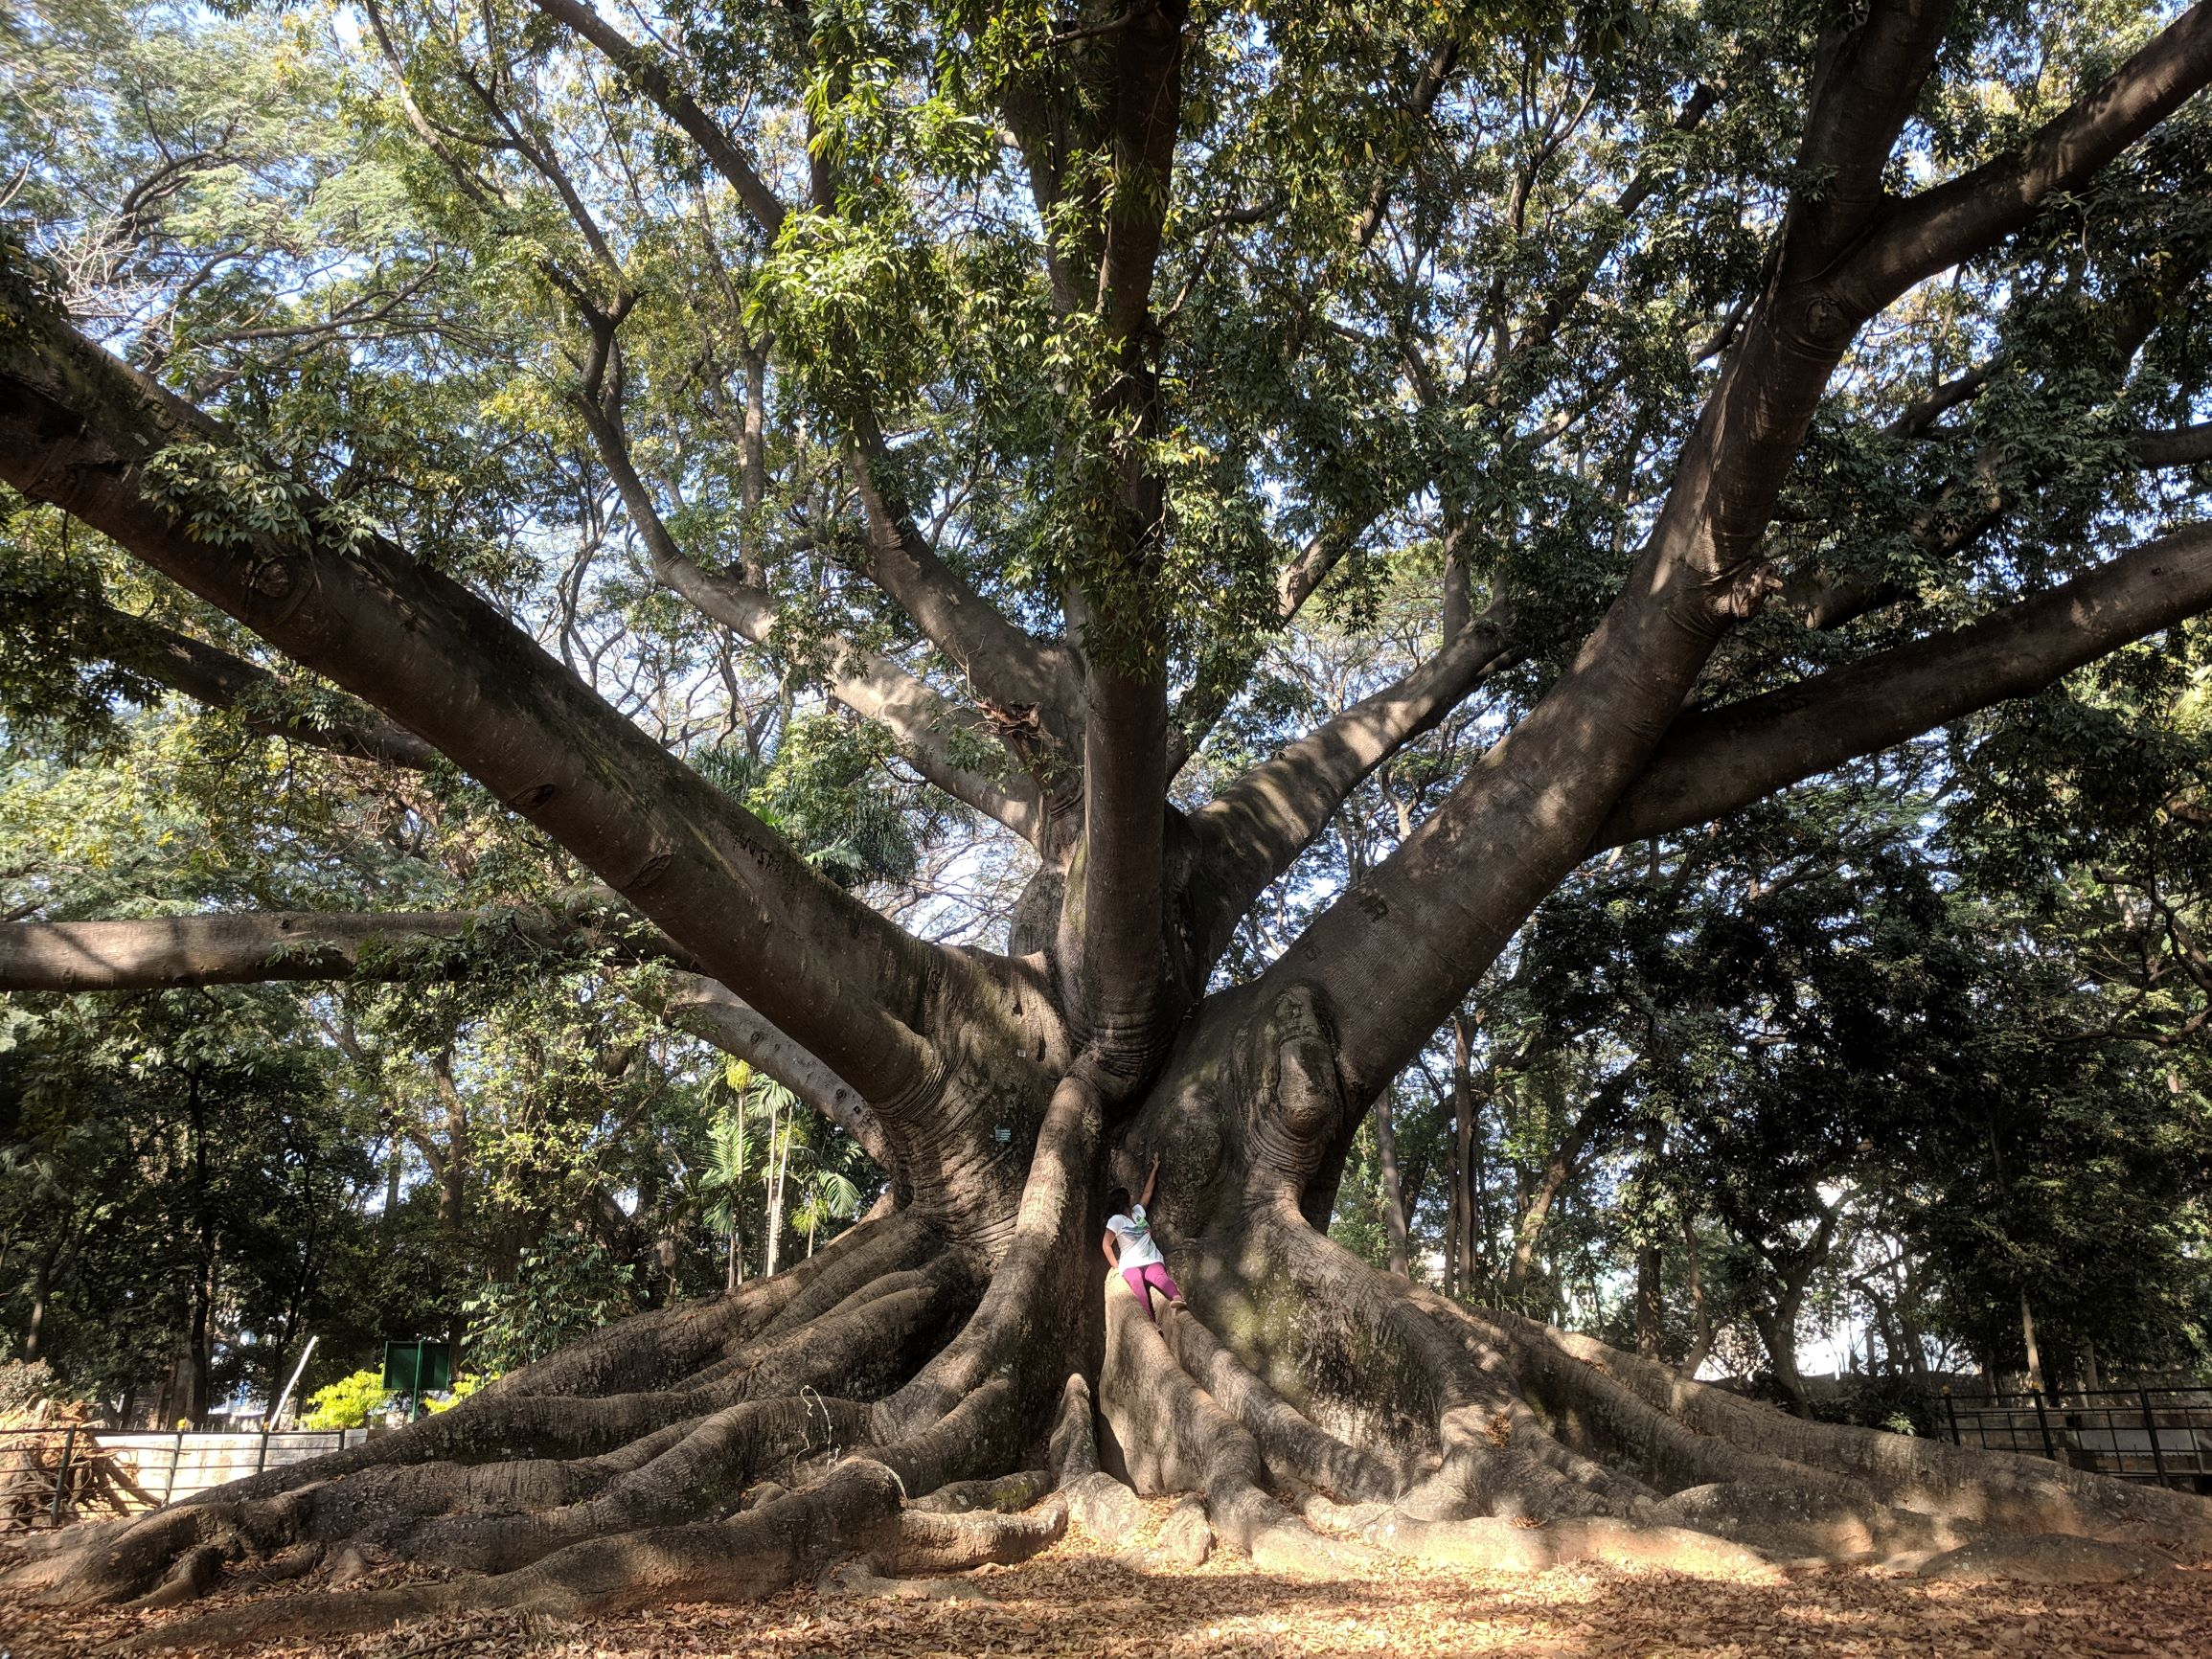 Lalbagh's trees are the oldest living denizens of Bengaluru. These include some exotic Persian and French varieties that were planted in the early 19th century.